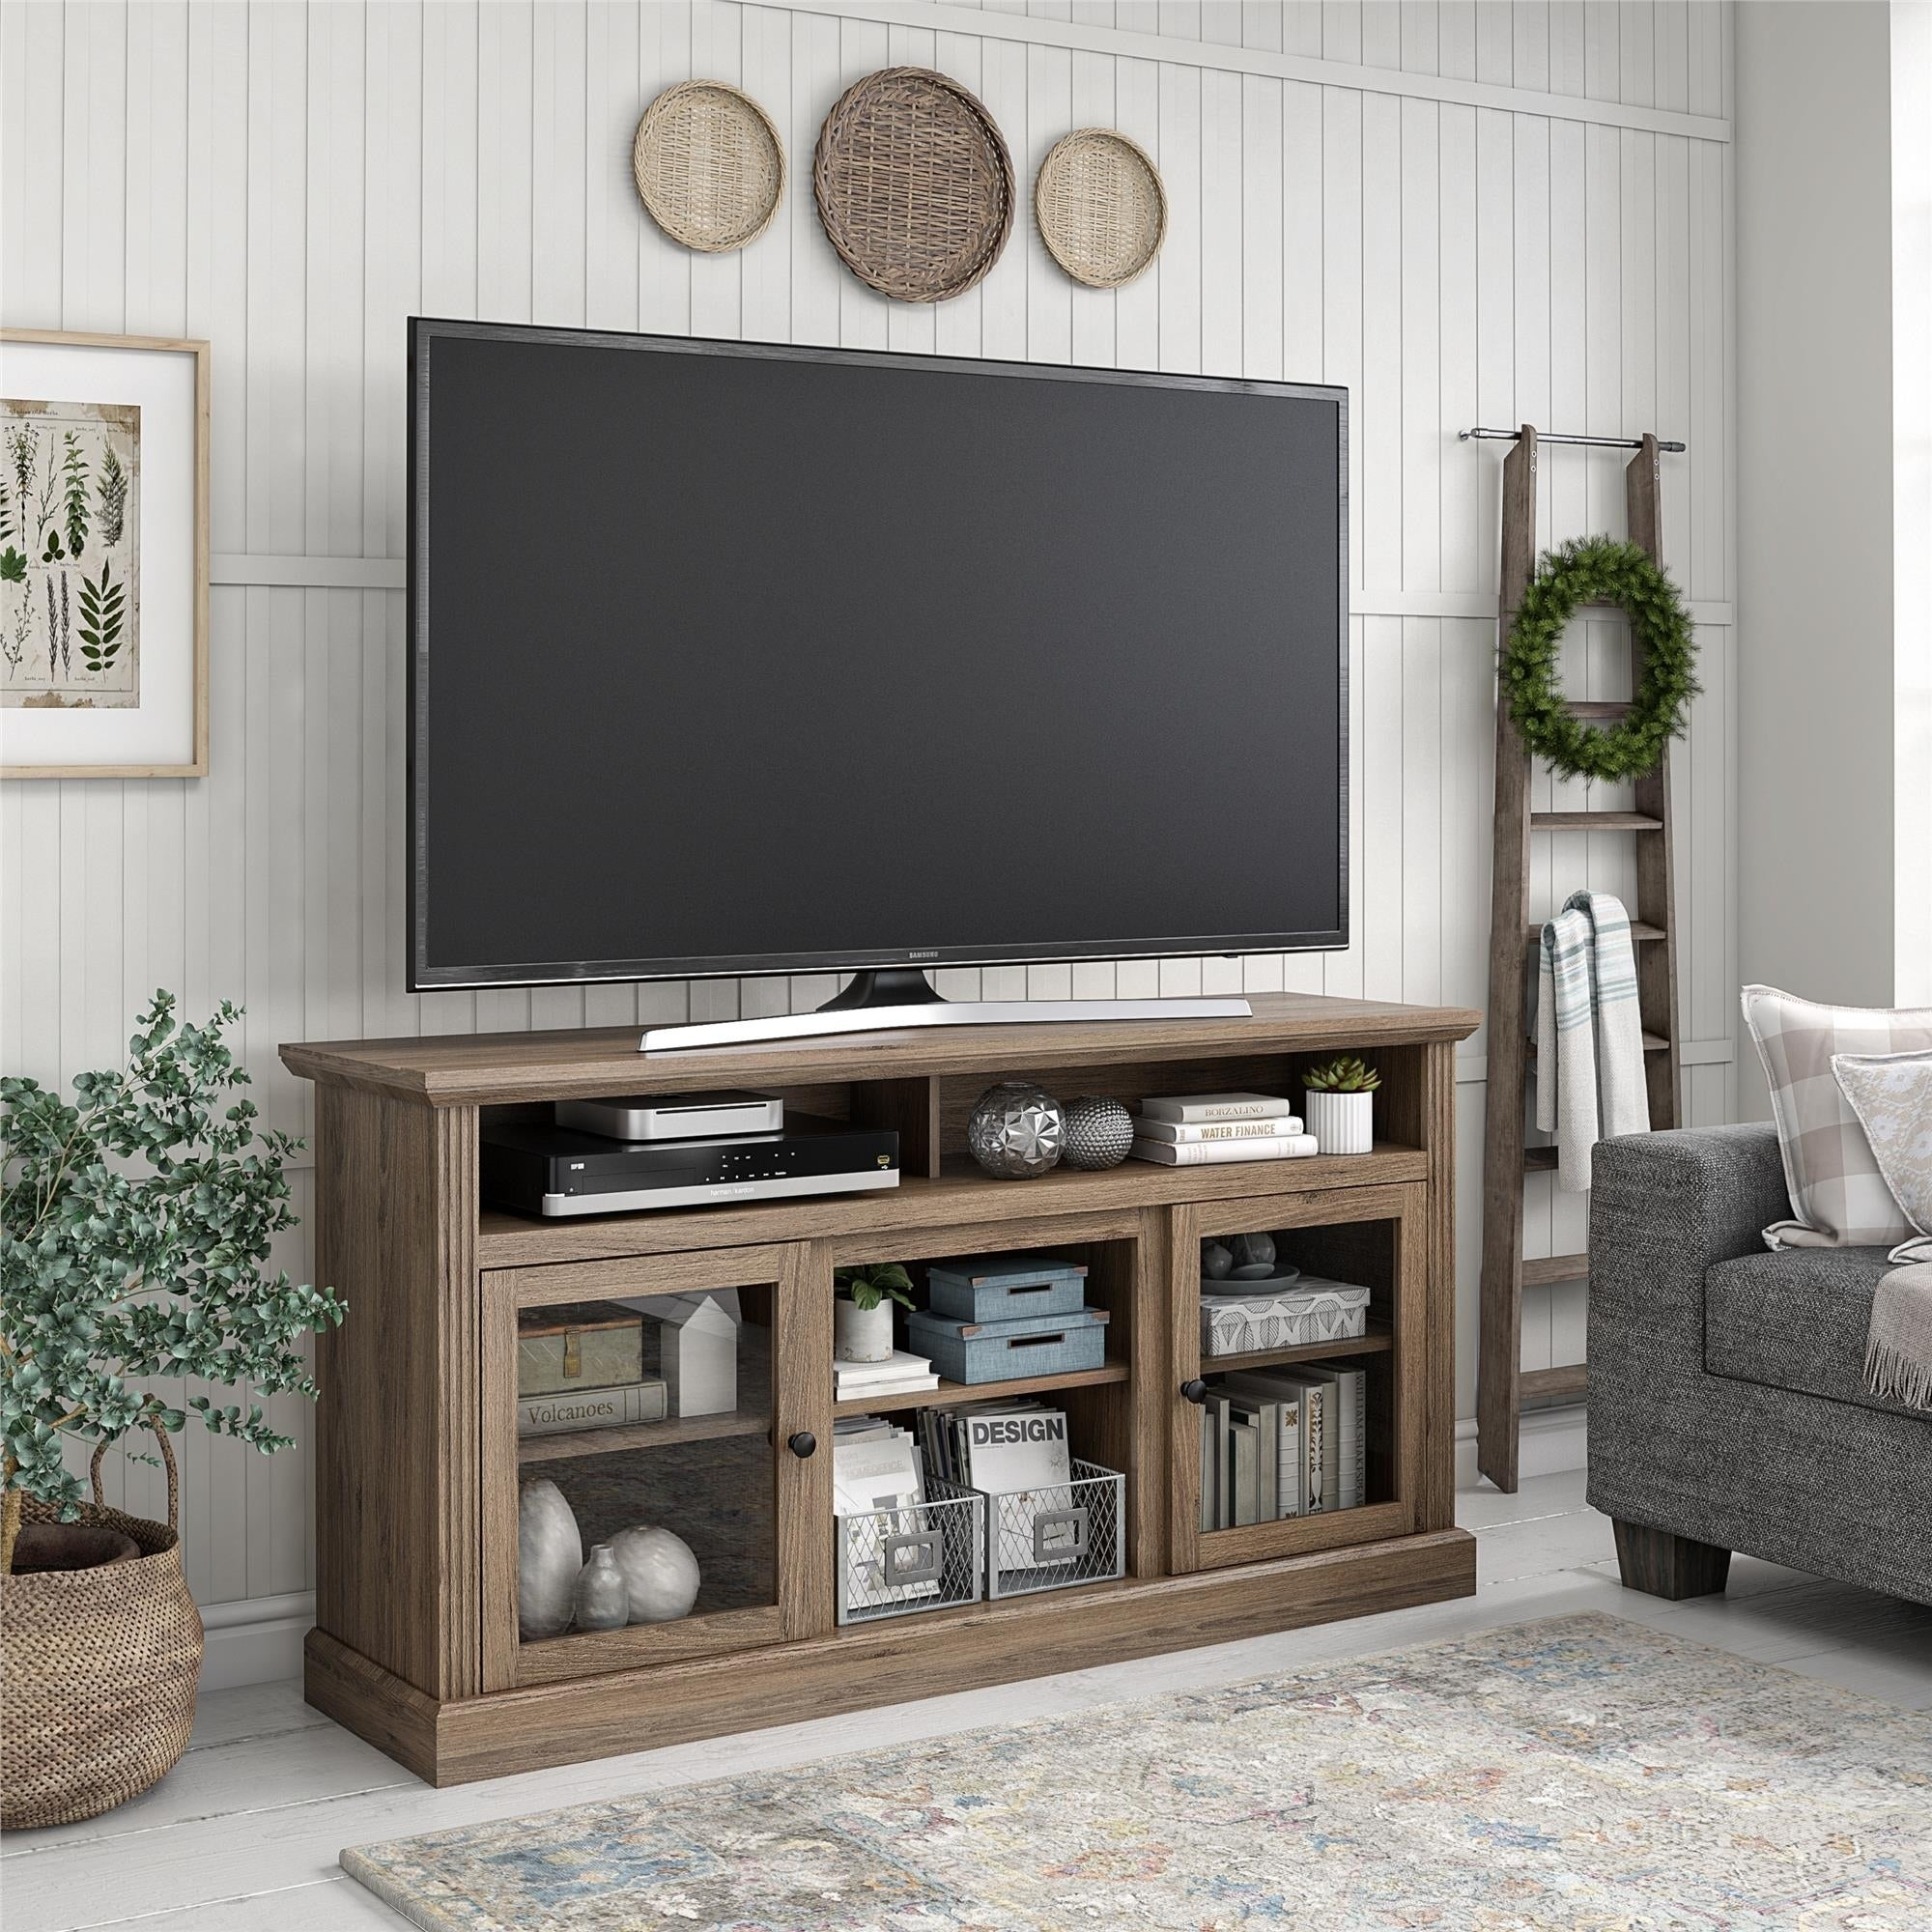 Avenue Greene Garnett Tv Stand For Tvs Up To 65 Inches Overstock 28988632